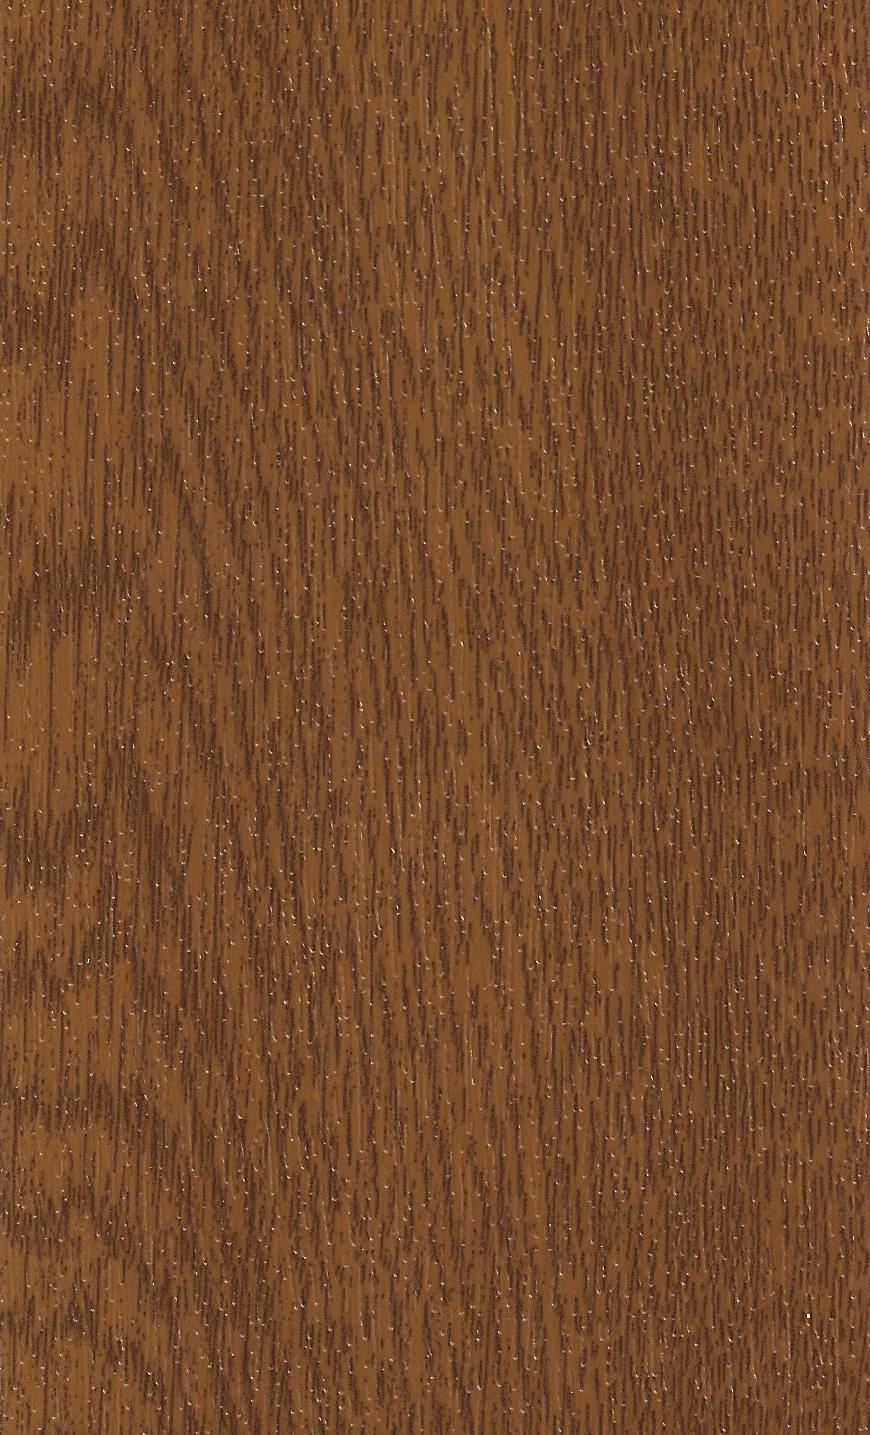 Golden Oak 3.2178.001 - Struktur